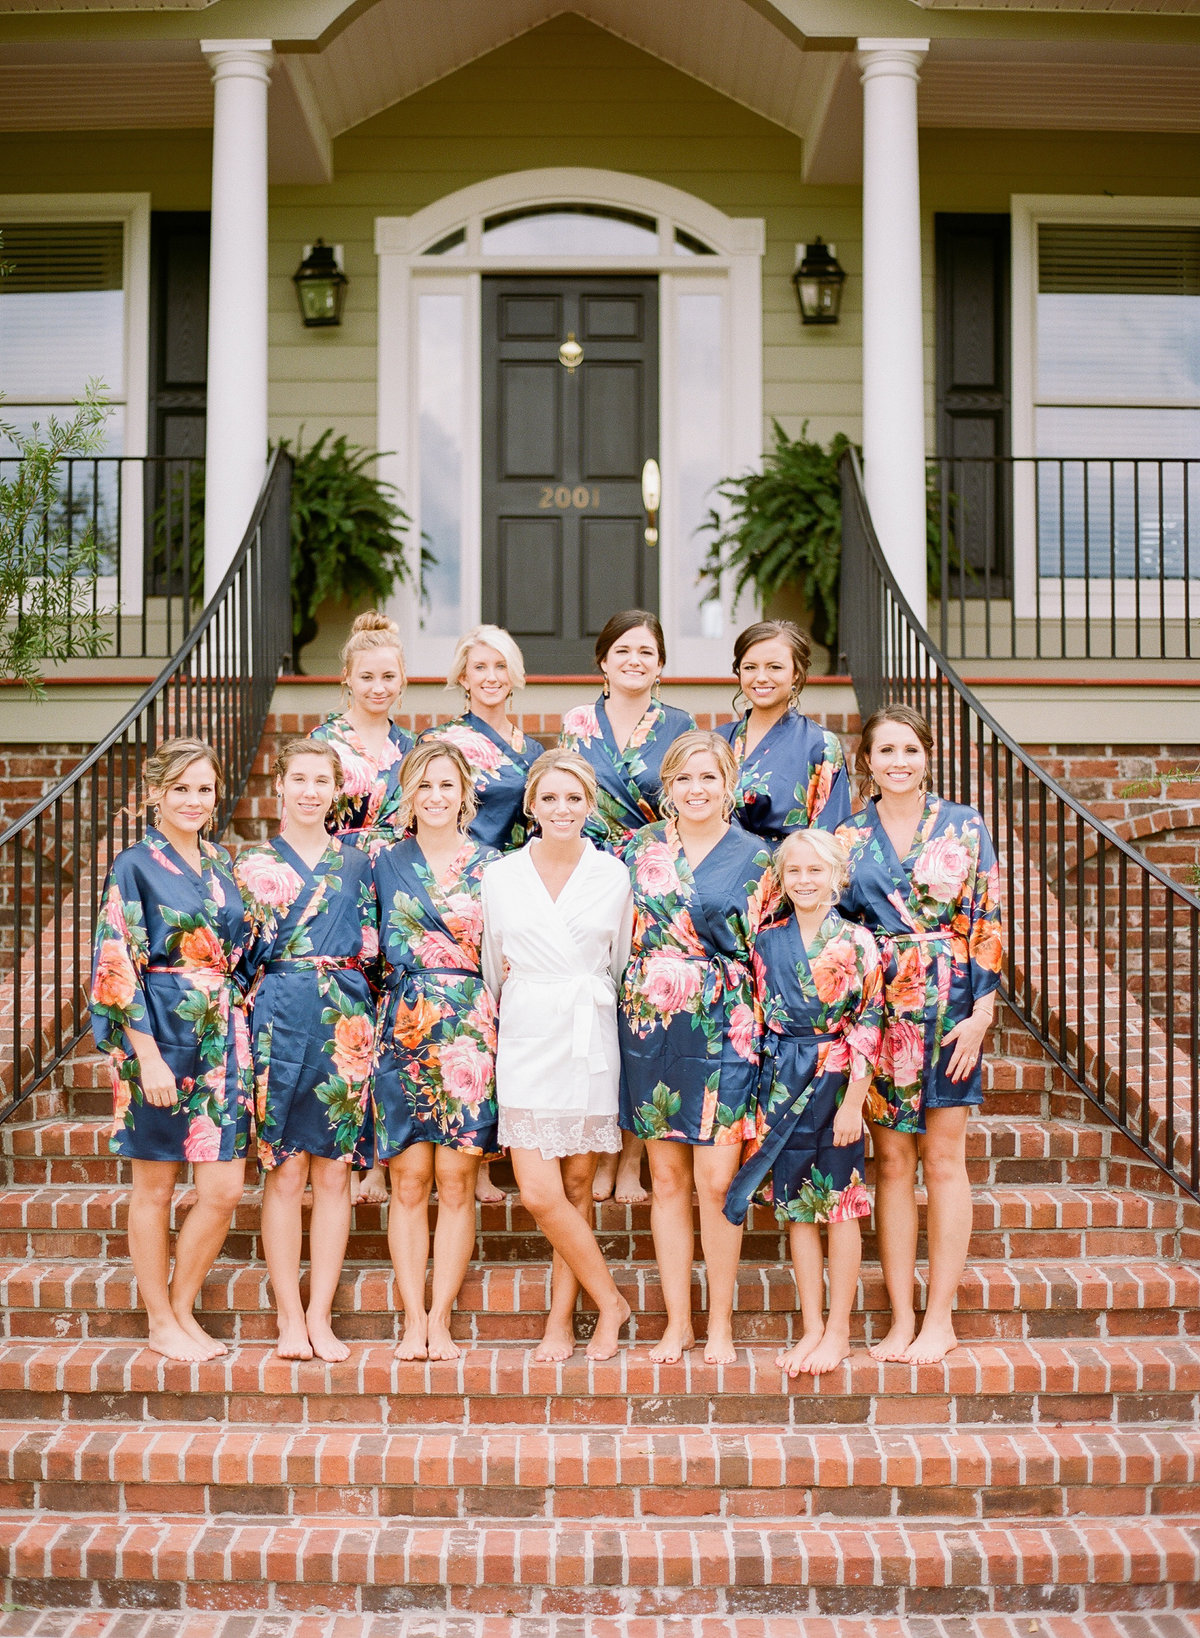 Bride Alexis and Bridesmaids in Navy Blue Floral Robes Getting Ready Charleston Wedding